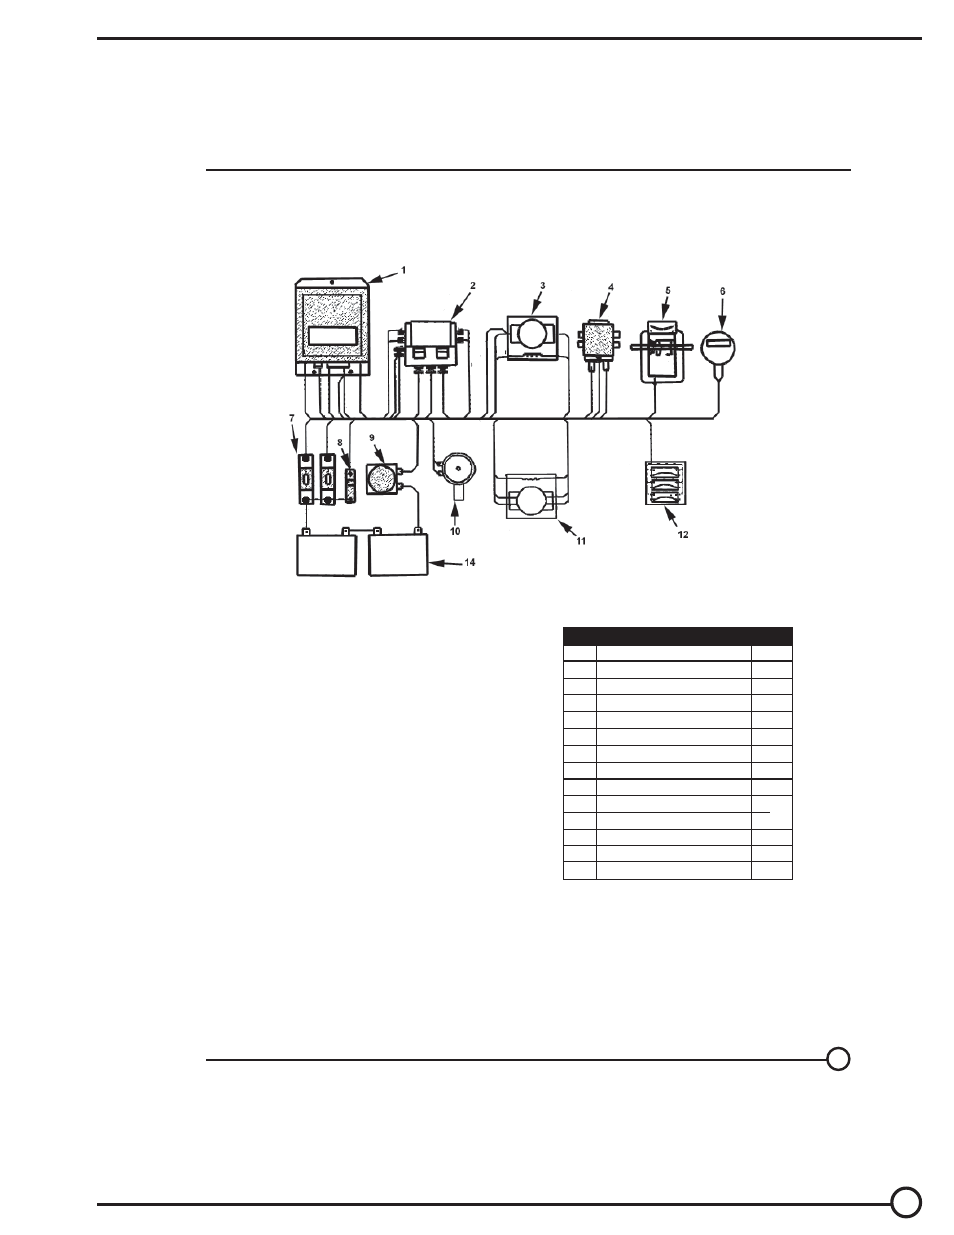 Ford 5900 Tractor Wiring Diagram Html Auto Electrical Viper